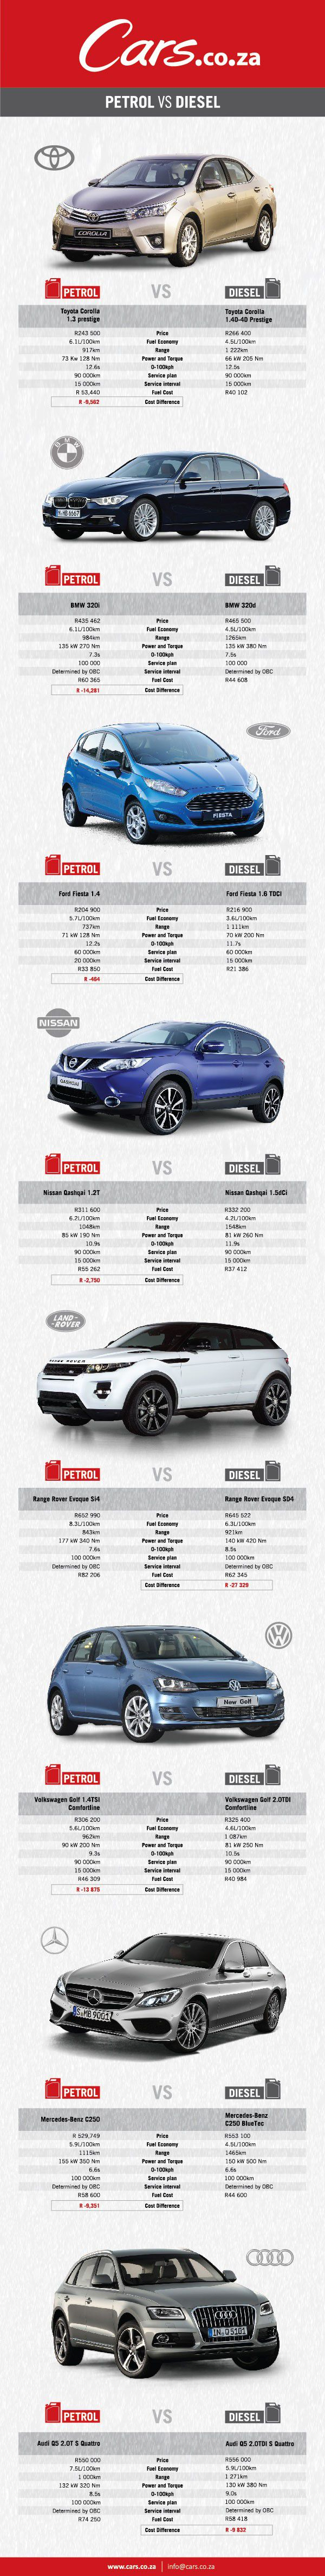 [UPDATED] Petrol vs Diesel: the pros and cons list